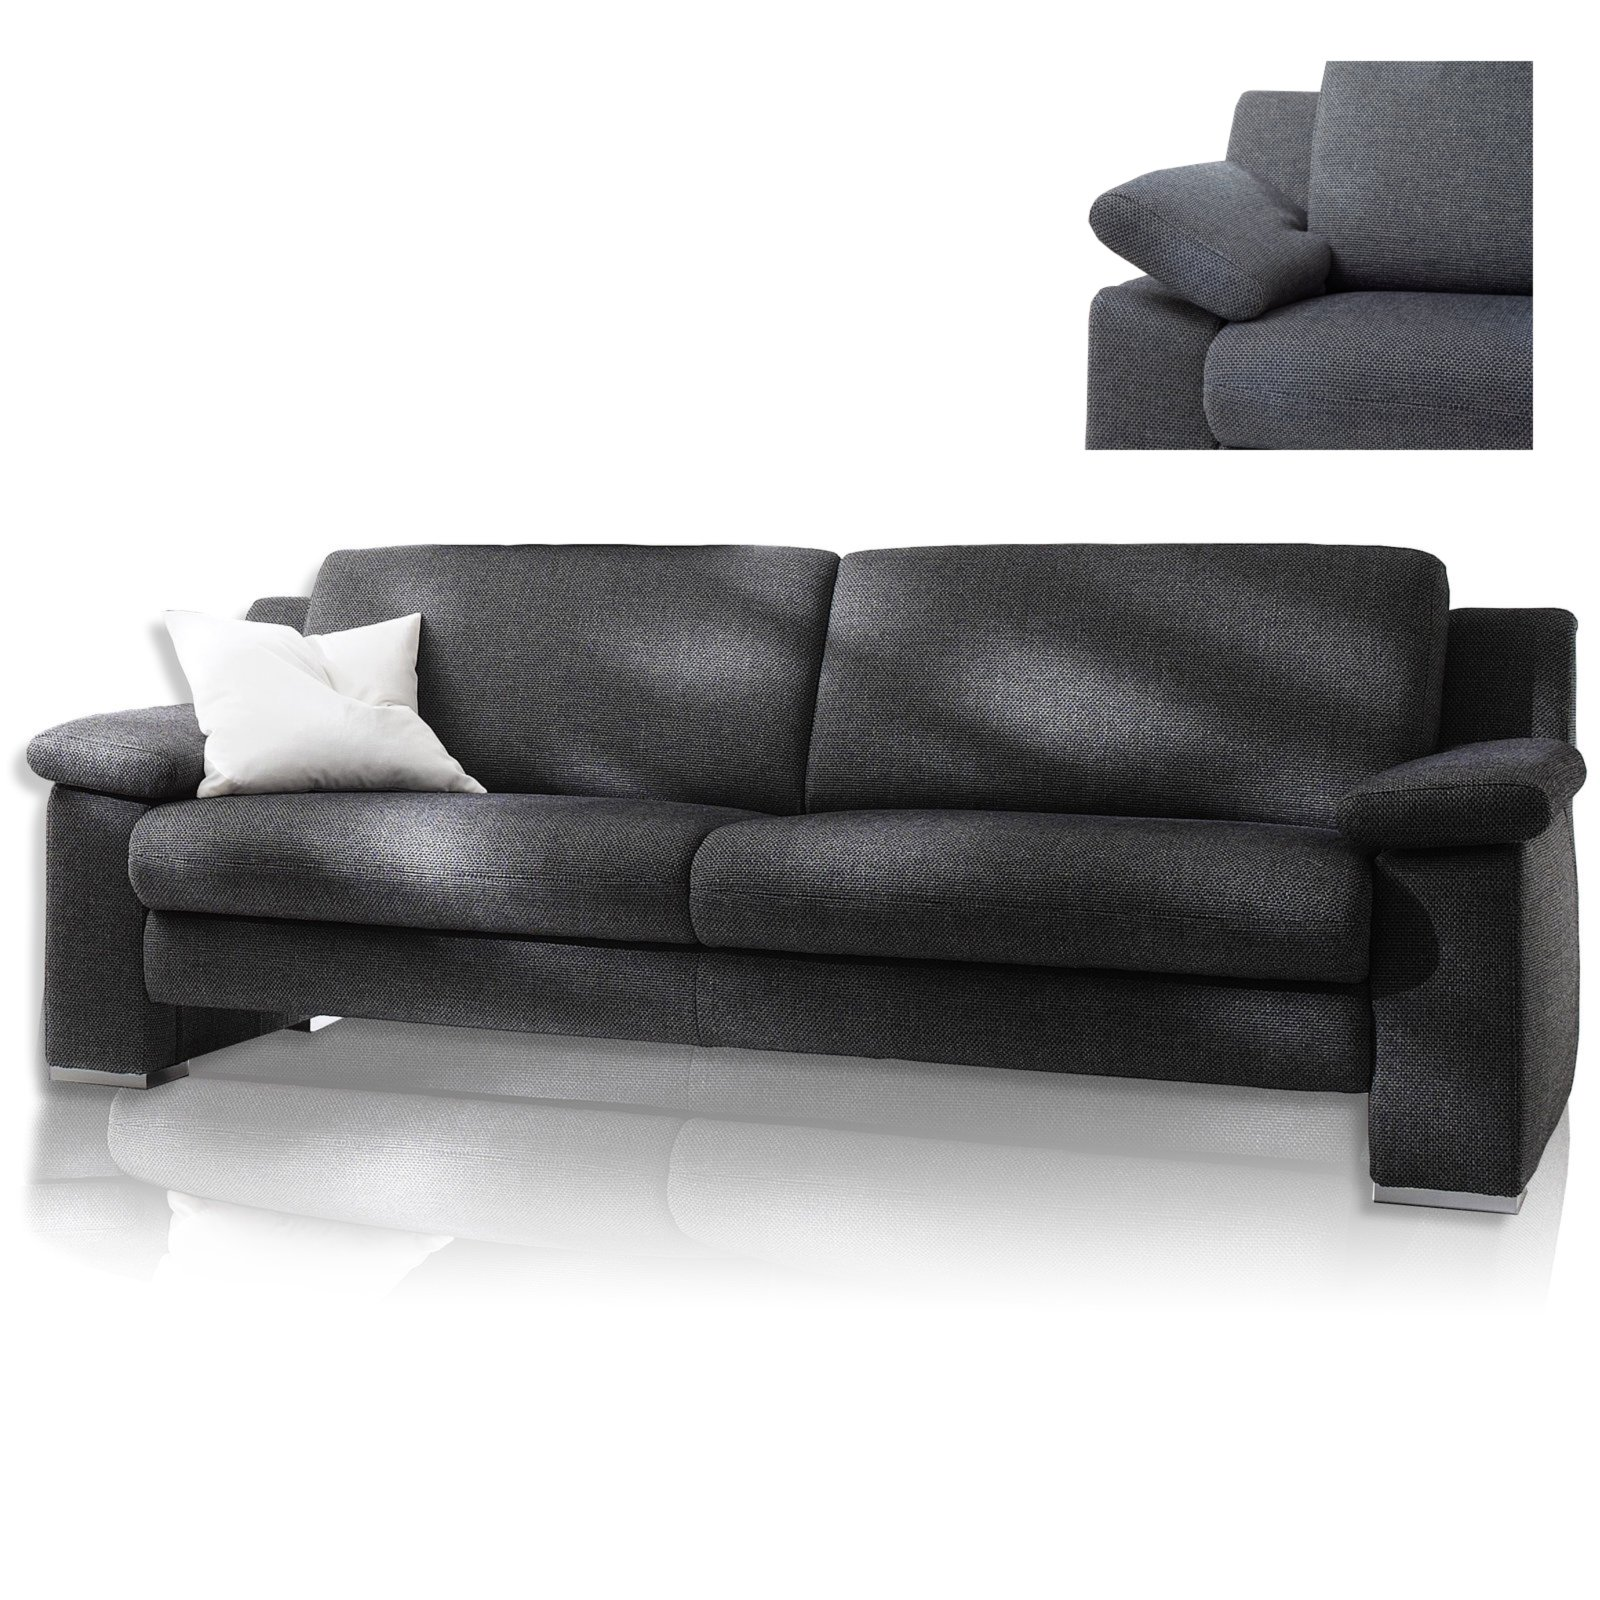 3 sitzer sofa grau mit sitzauszug einzelsofas 2er. Black Bedroom Furniture Sets. Home Design Ideas